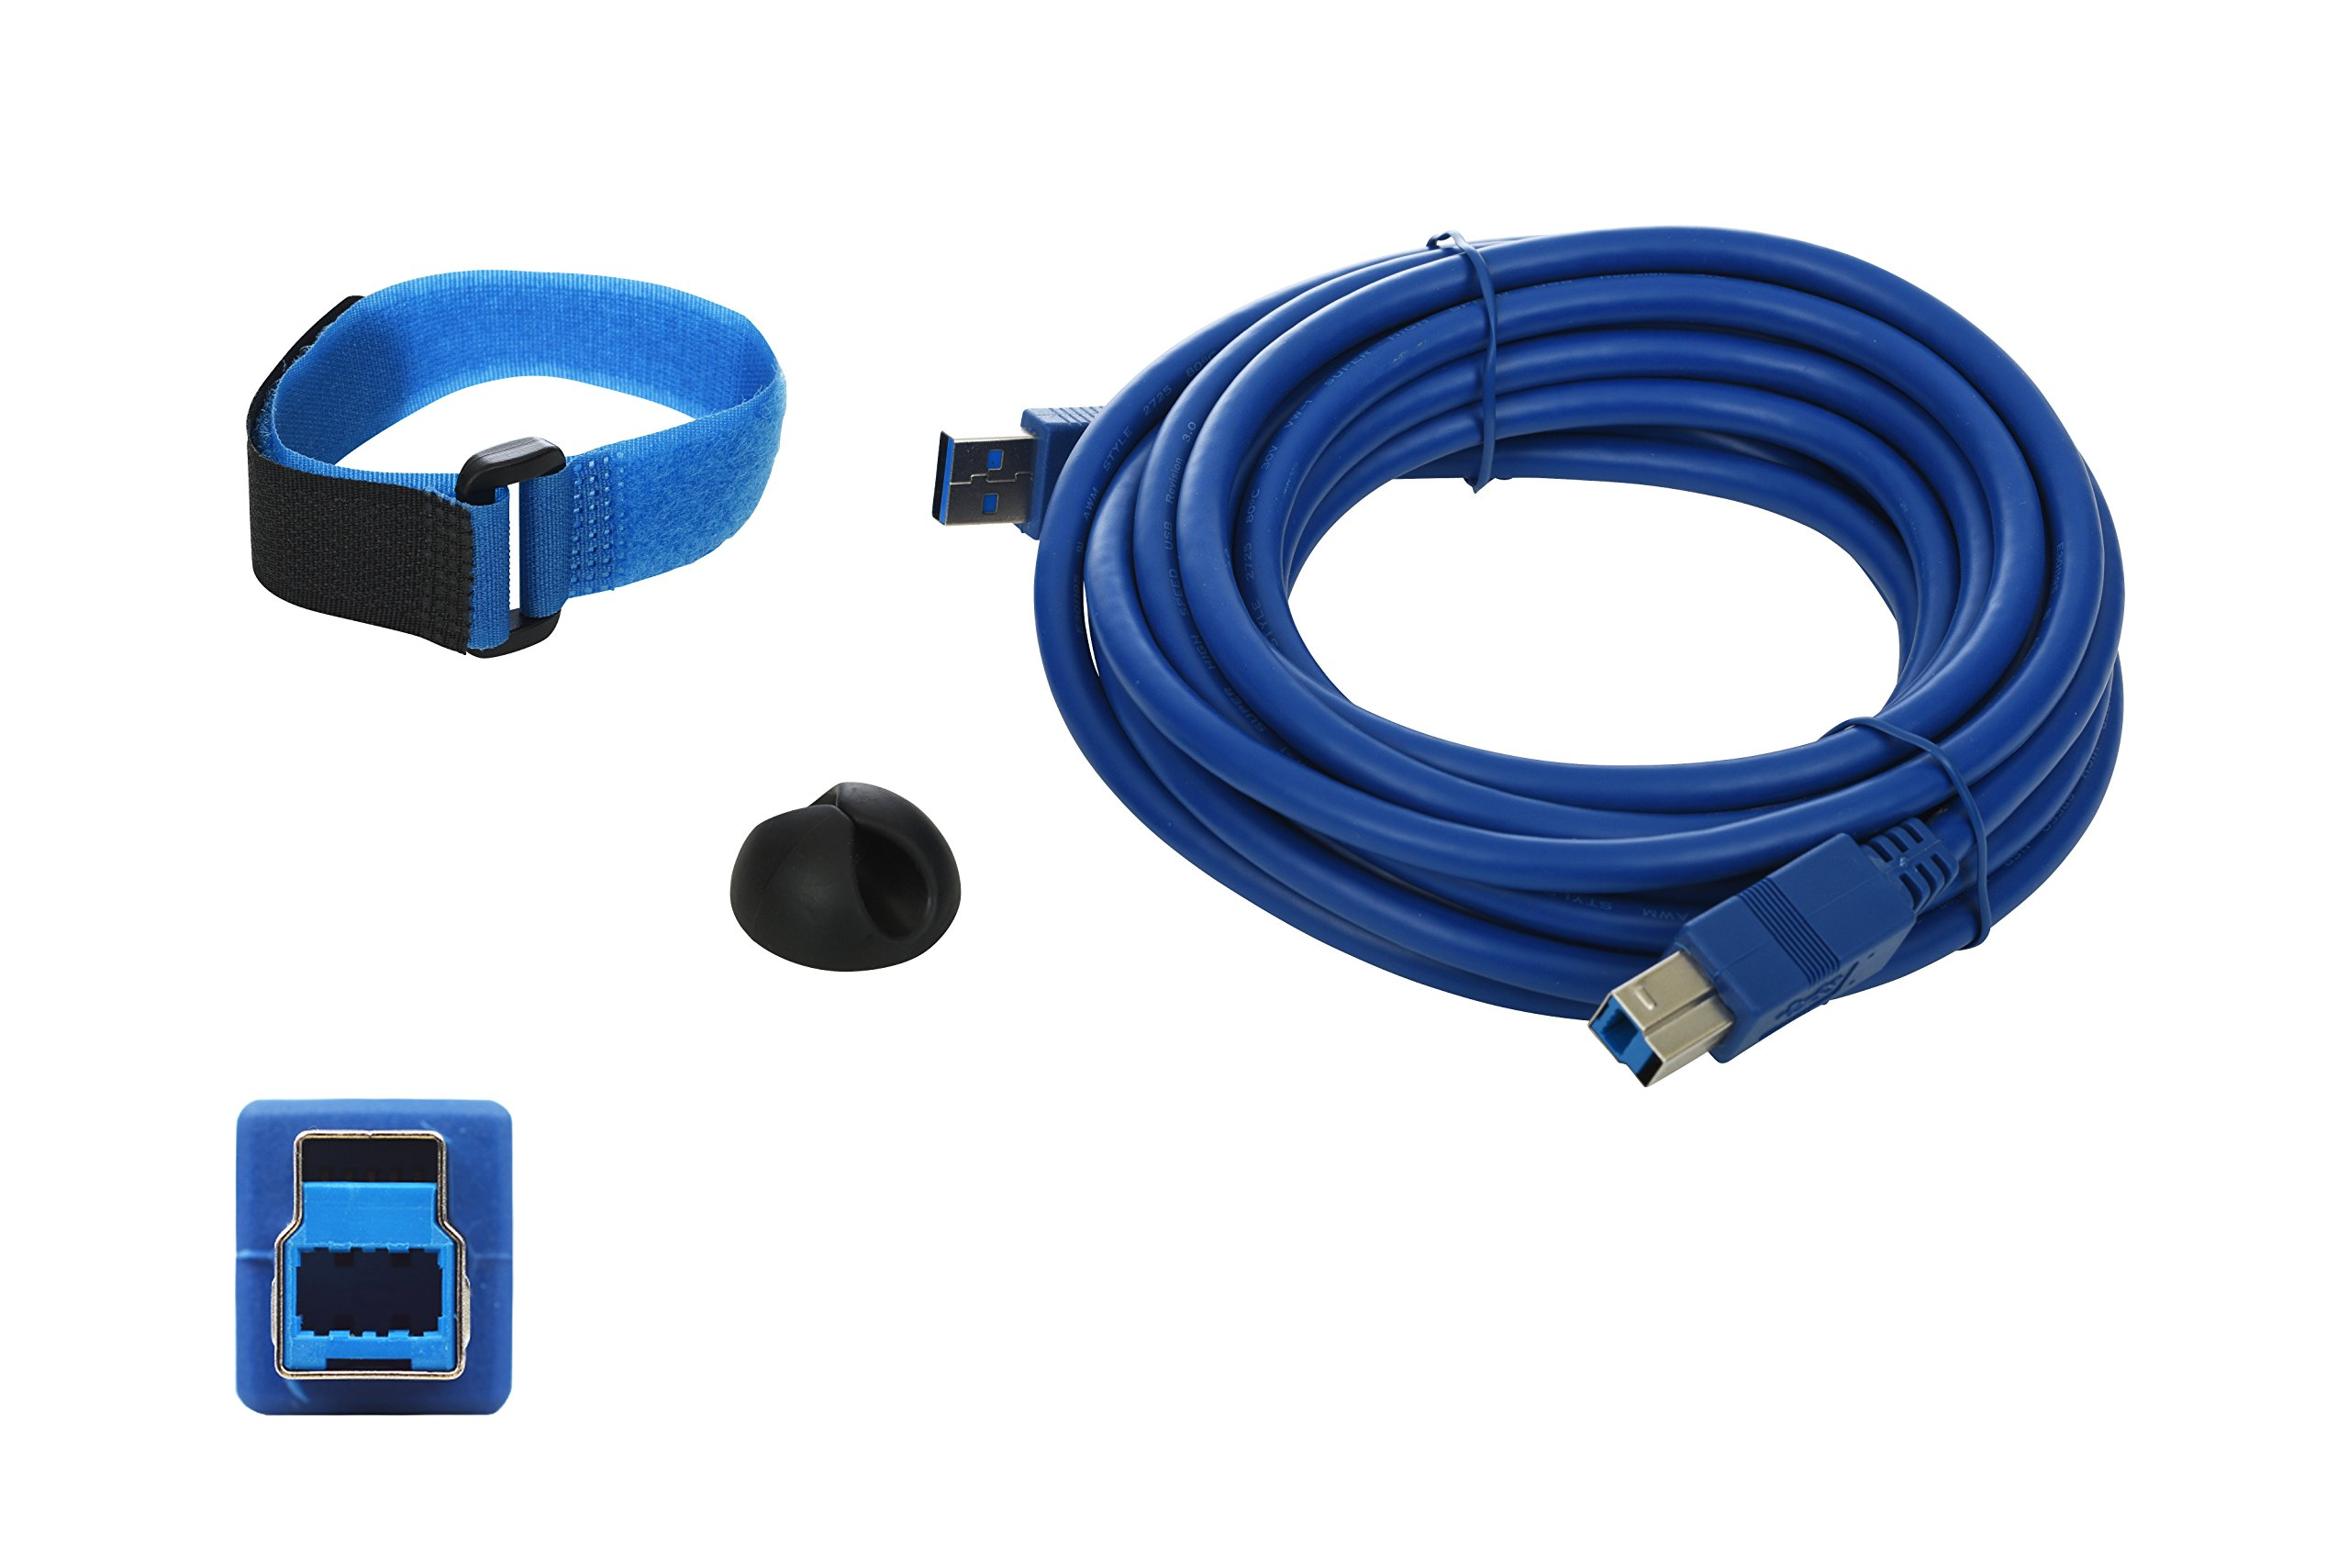 Tether Tech TC85 Super High Speed AB USB 3.0 Camera Tether Cable - 15ft/4.5 Meters.